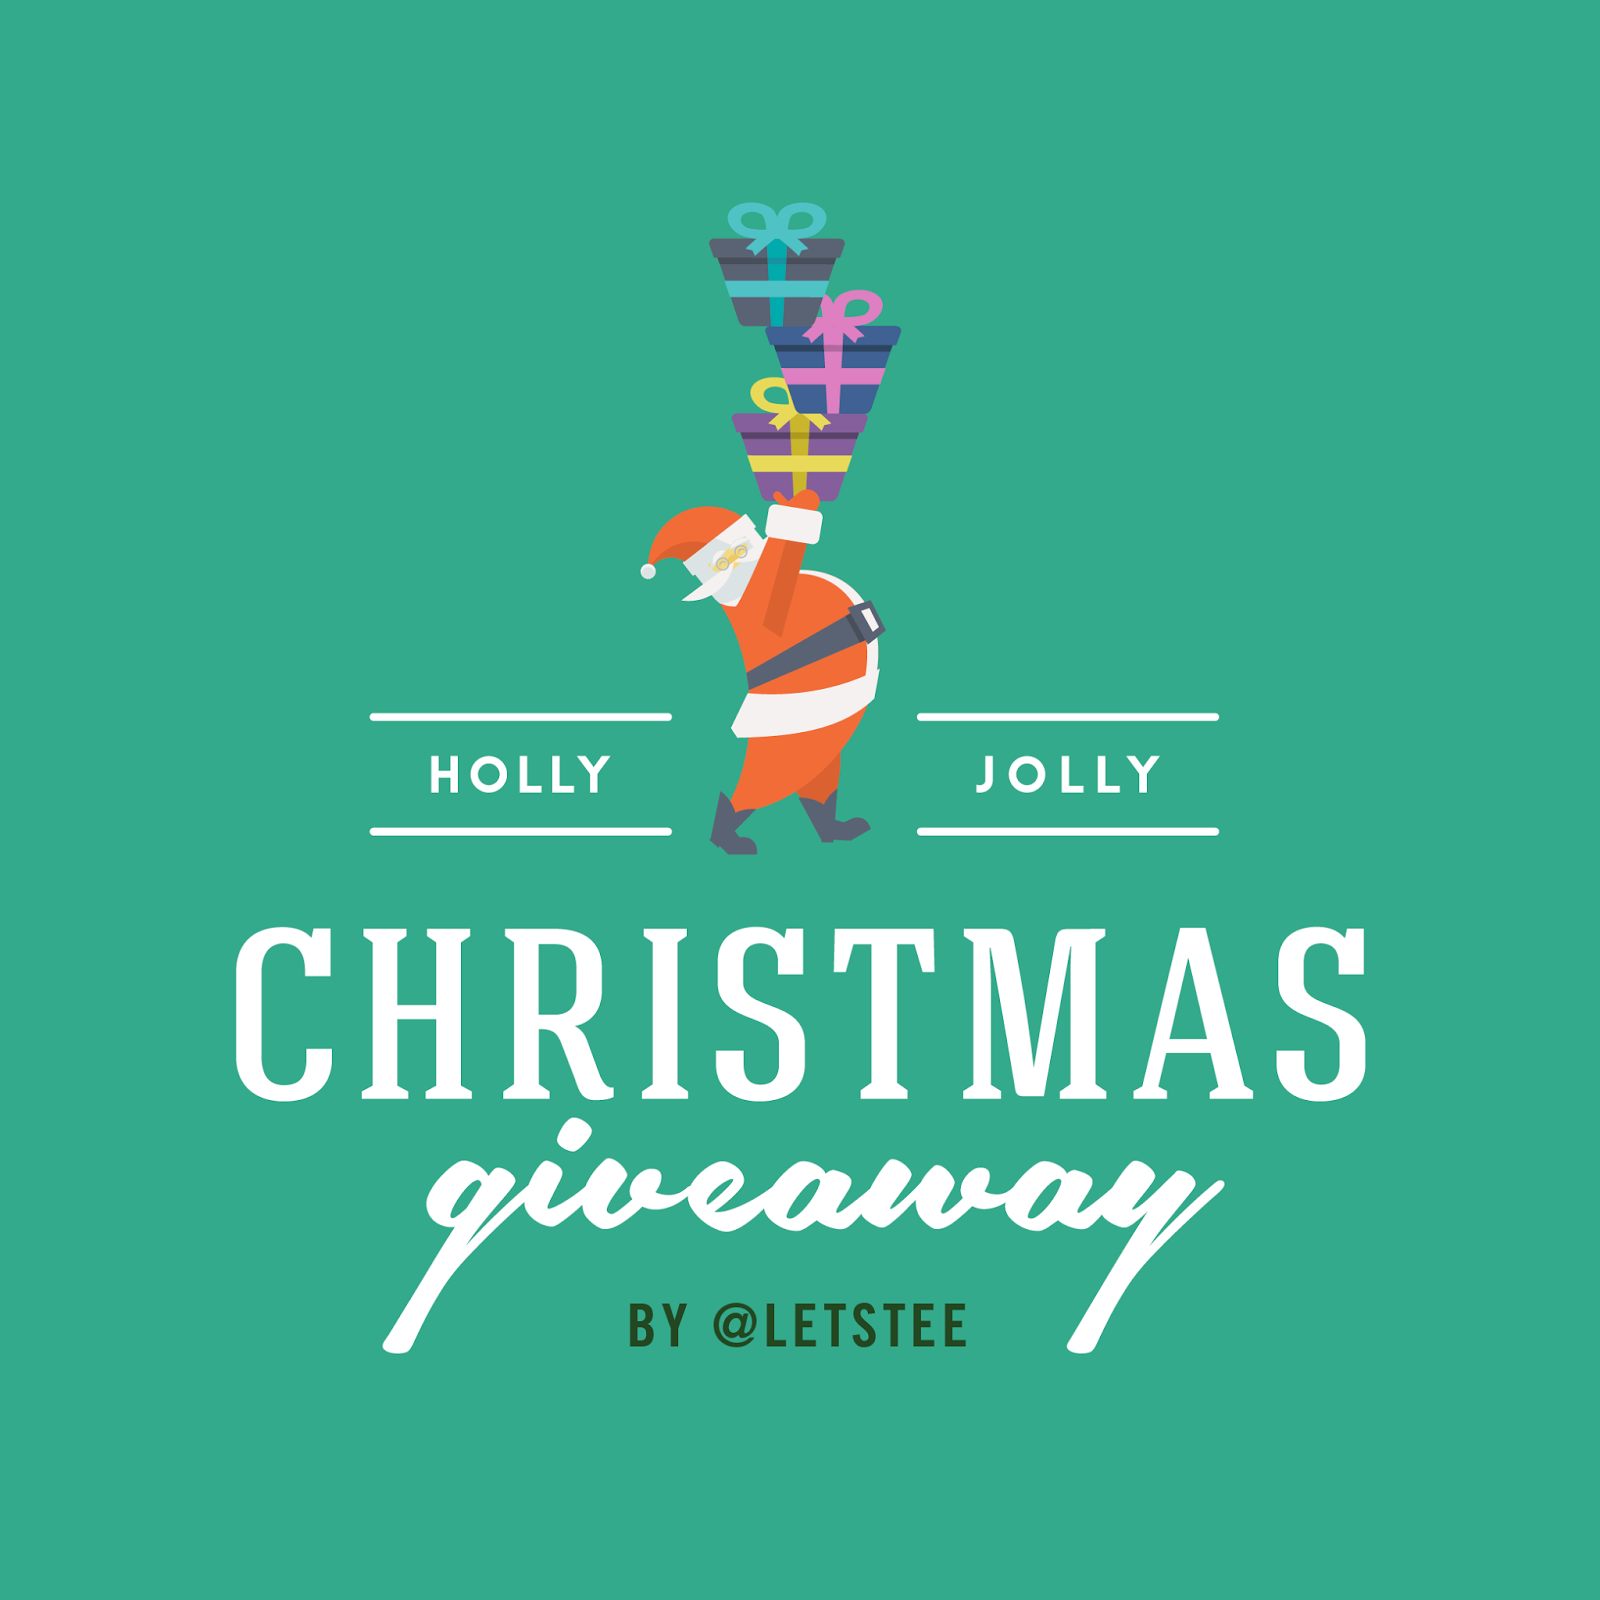 http://letstee.blogspot.com/2014/12/christmas-giveaway.html